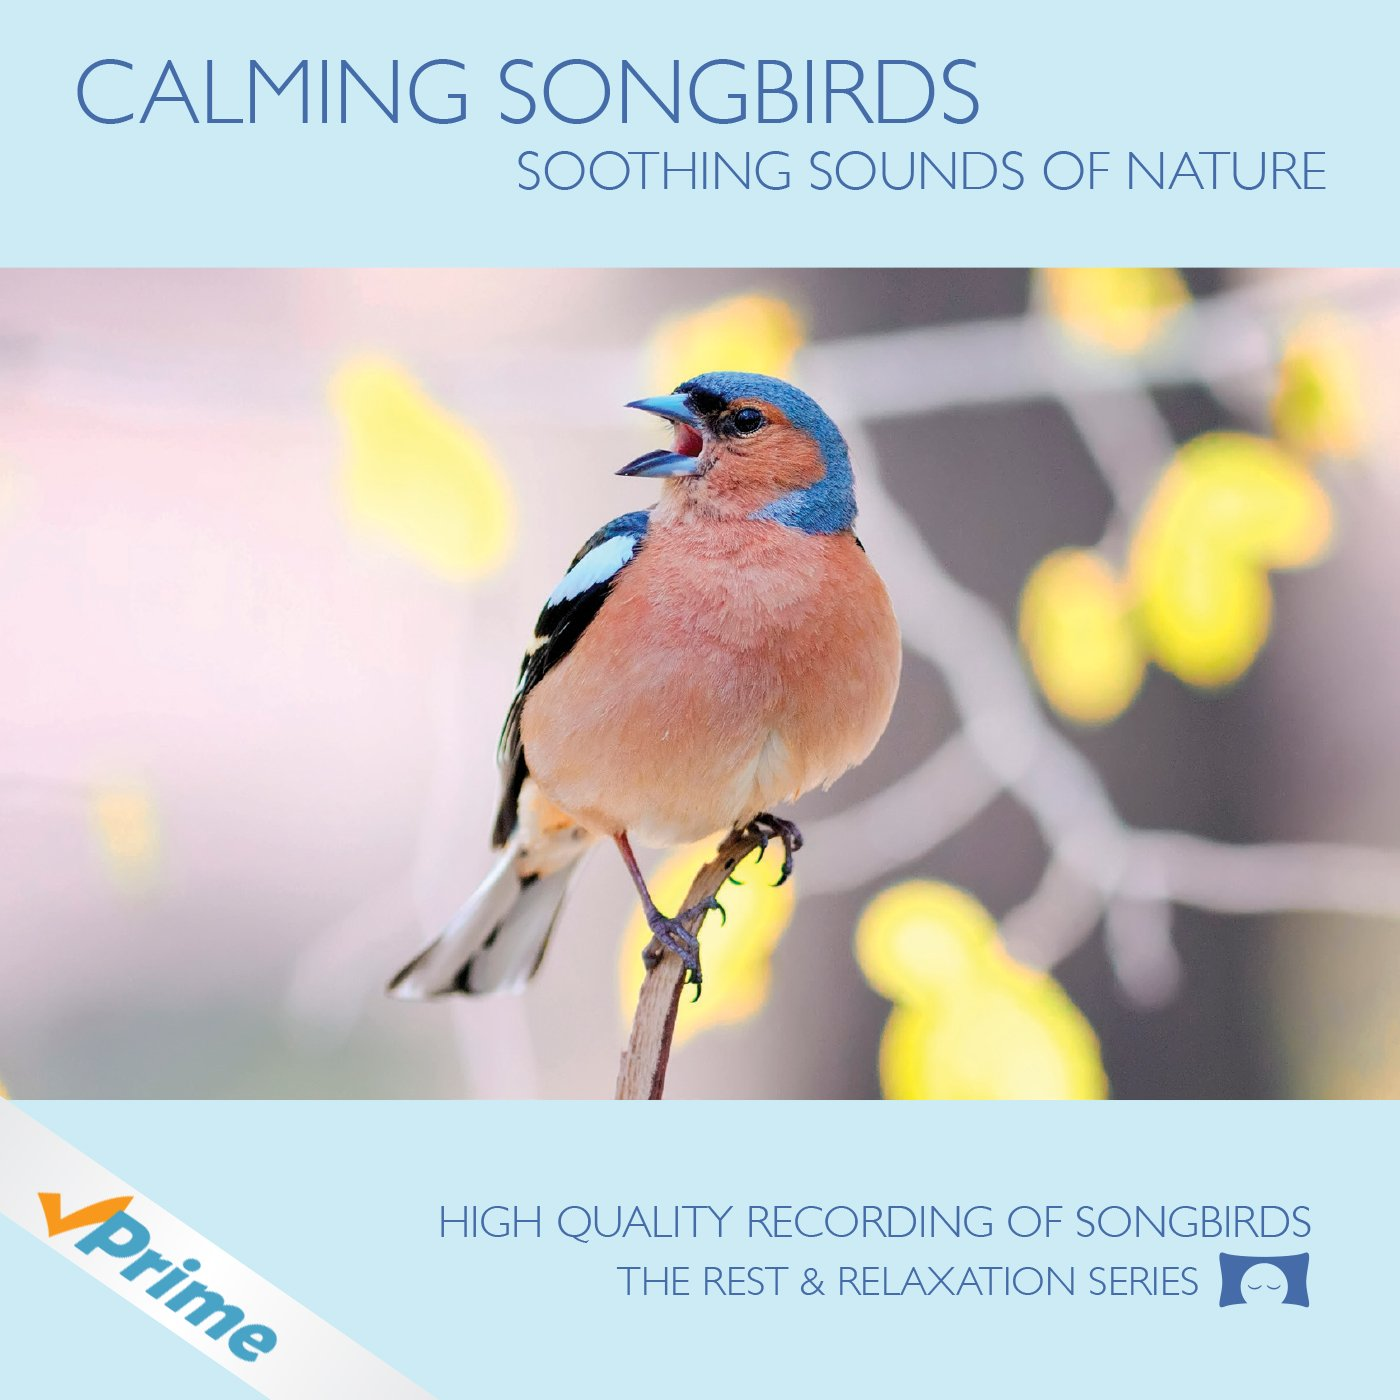 Calming Songbirds - Nature Sounds Recording Of Bird Calls - For Meditation, Relaxation and Creating a Soothing Atmosphere - Nature's Perfect White Noise - by The Rhythm Tree - The Rest and Relaxation Series